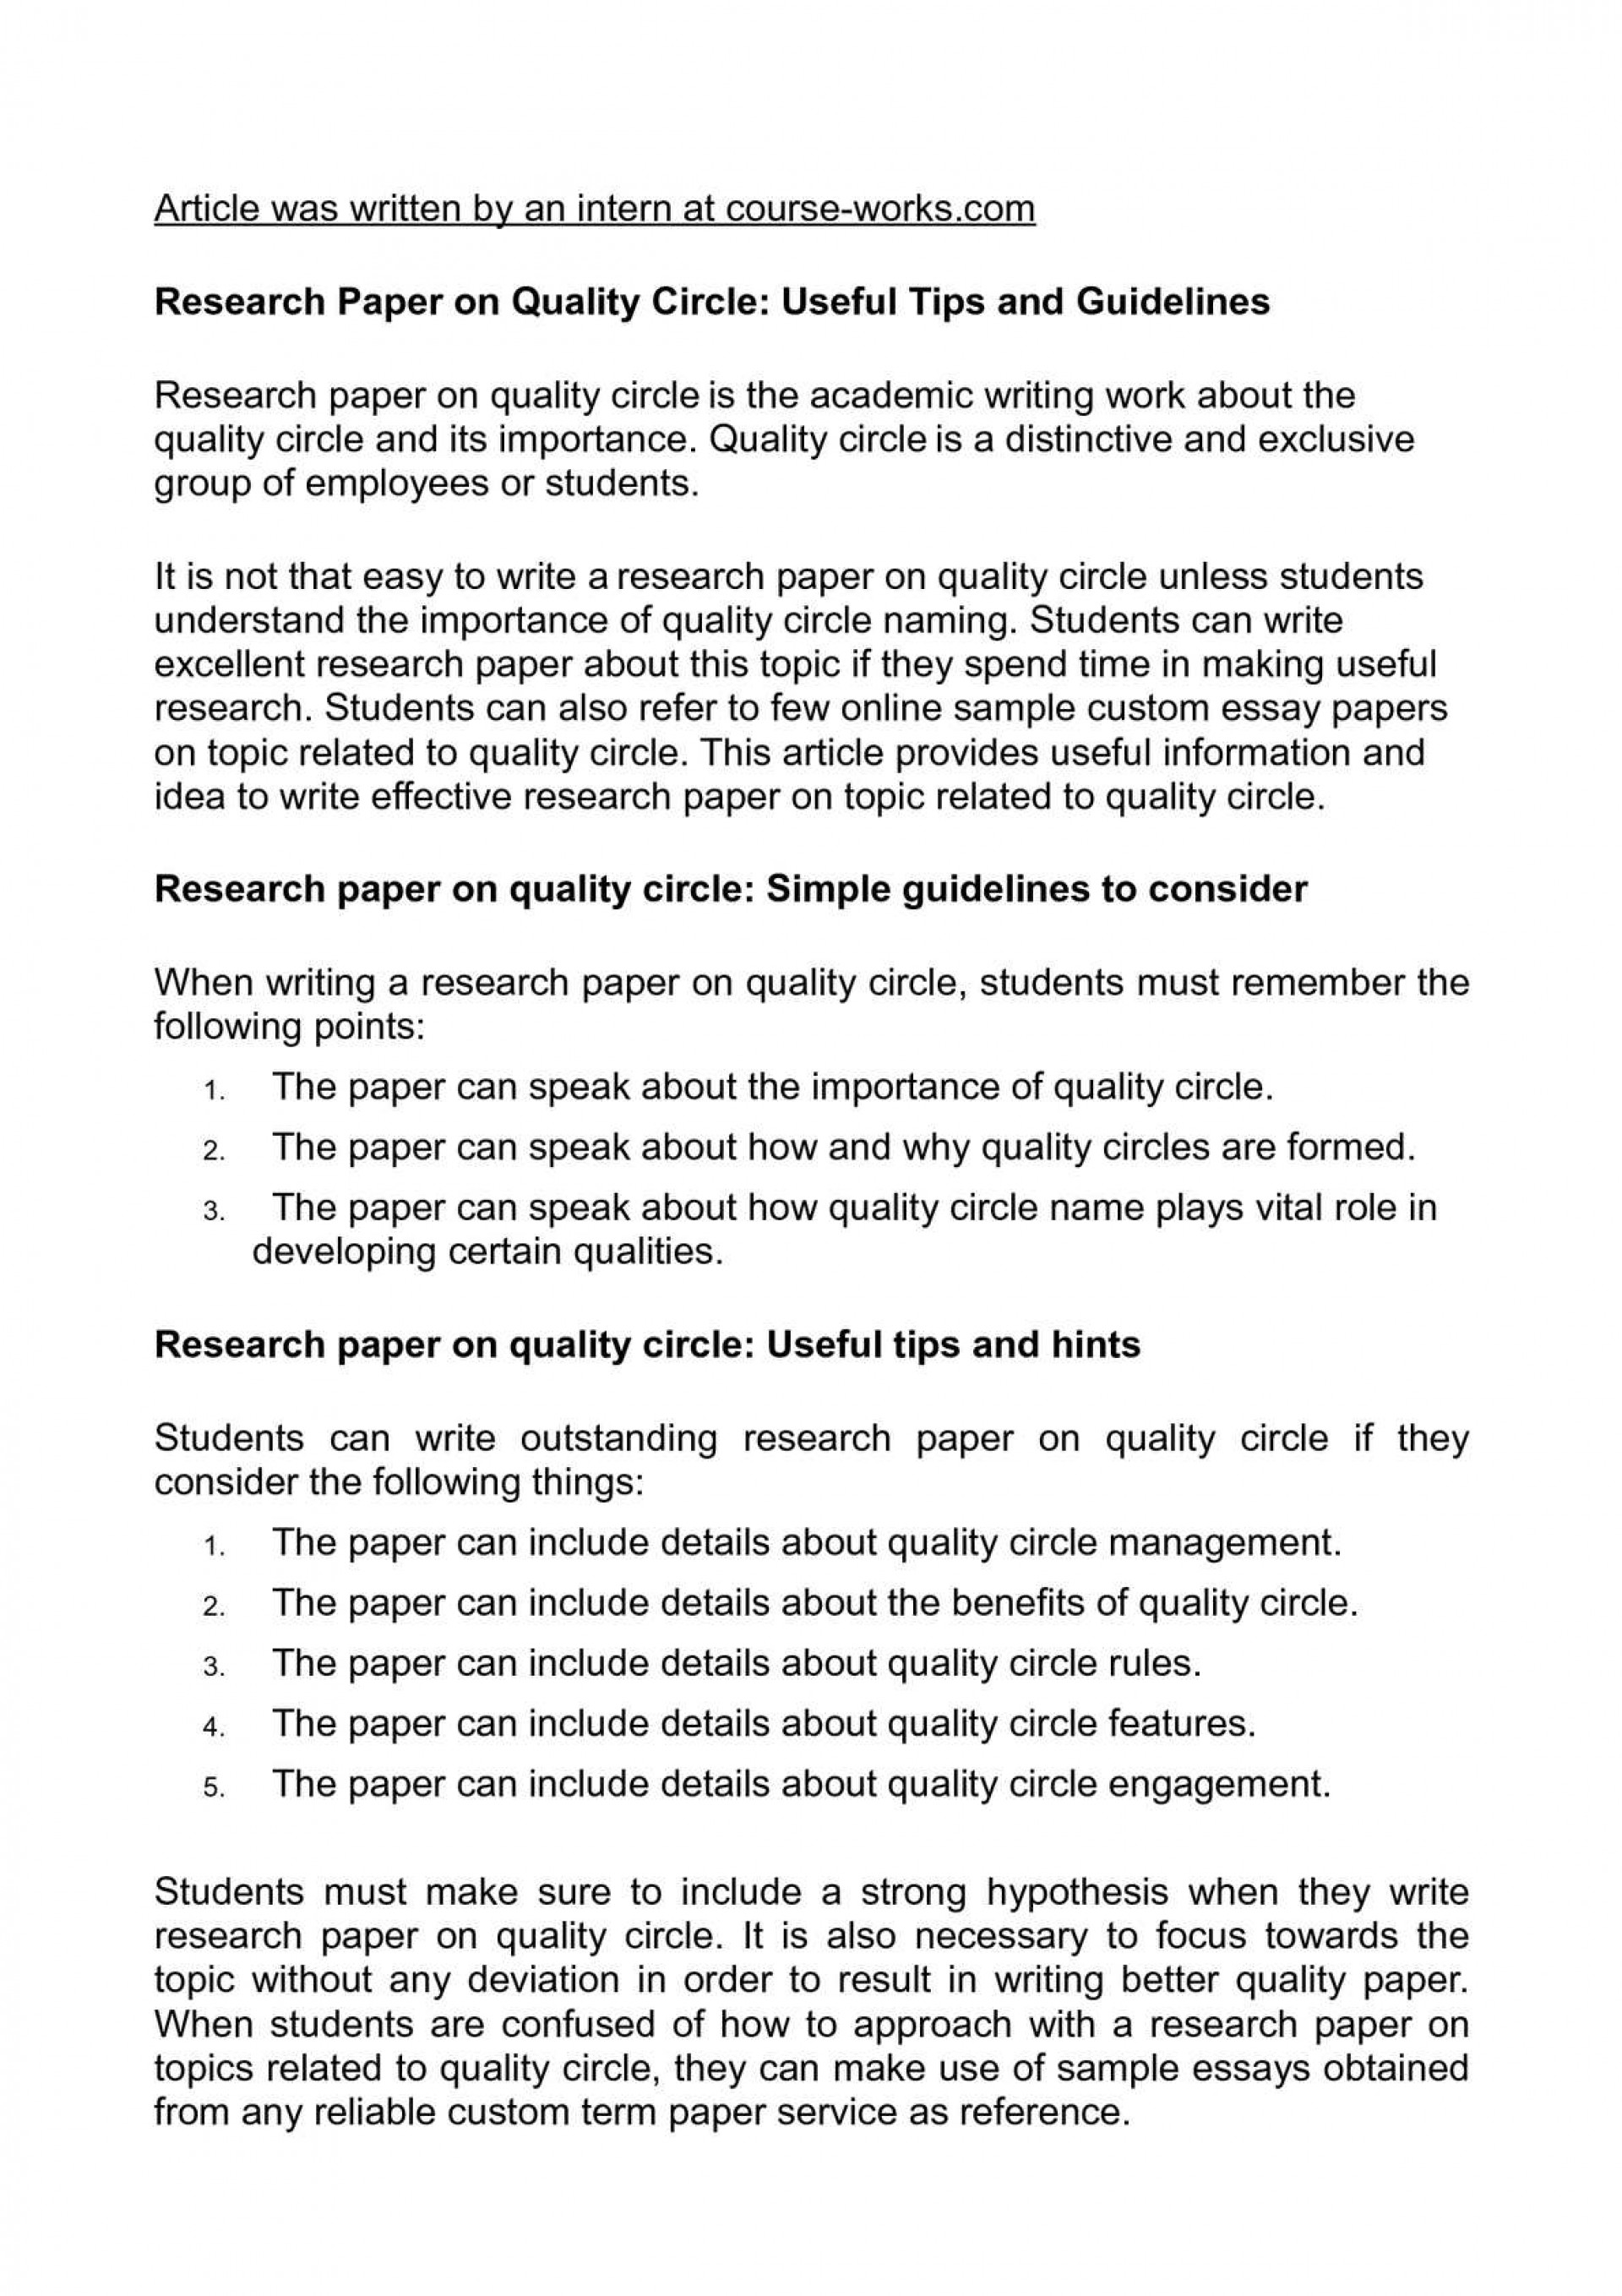 018 Tips For Writing Research Papers Paper Unforgettable Apa 1920